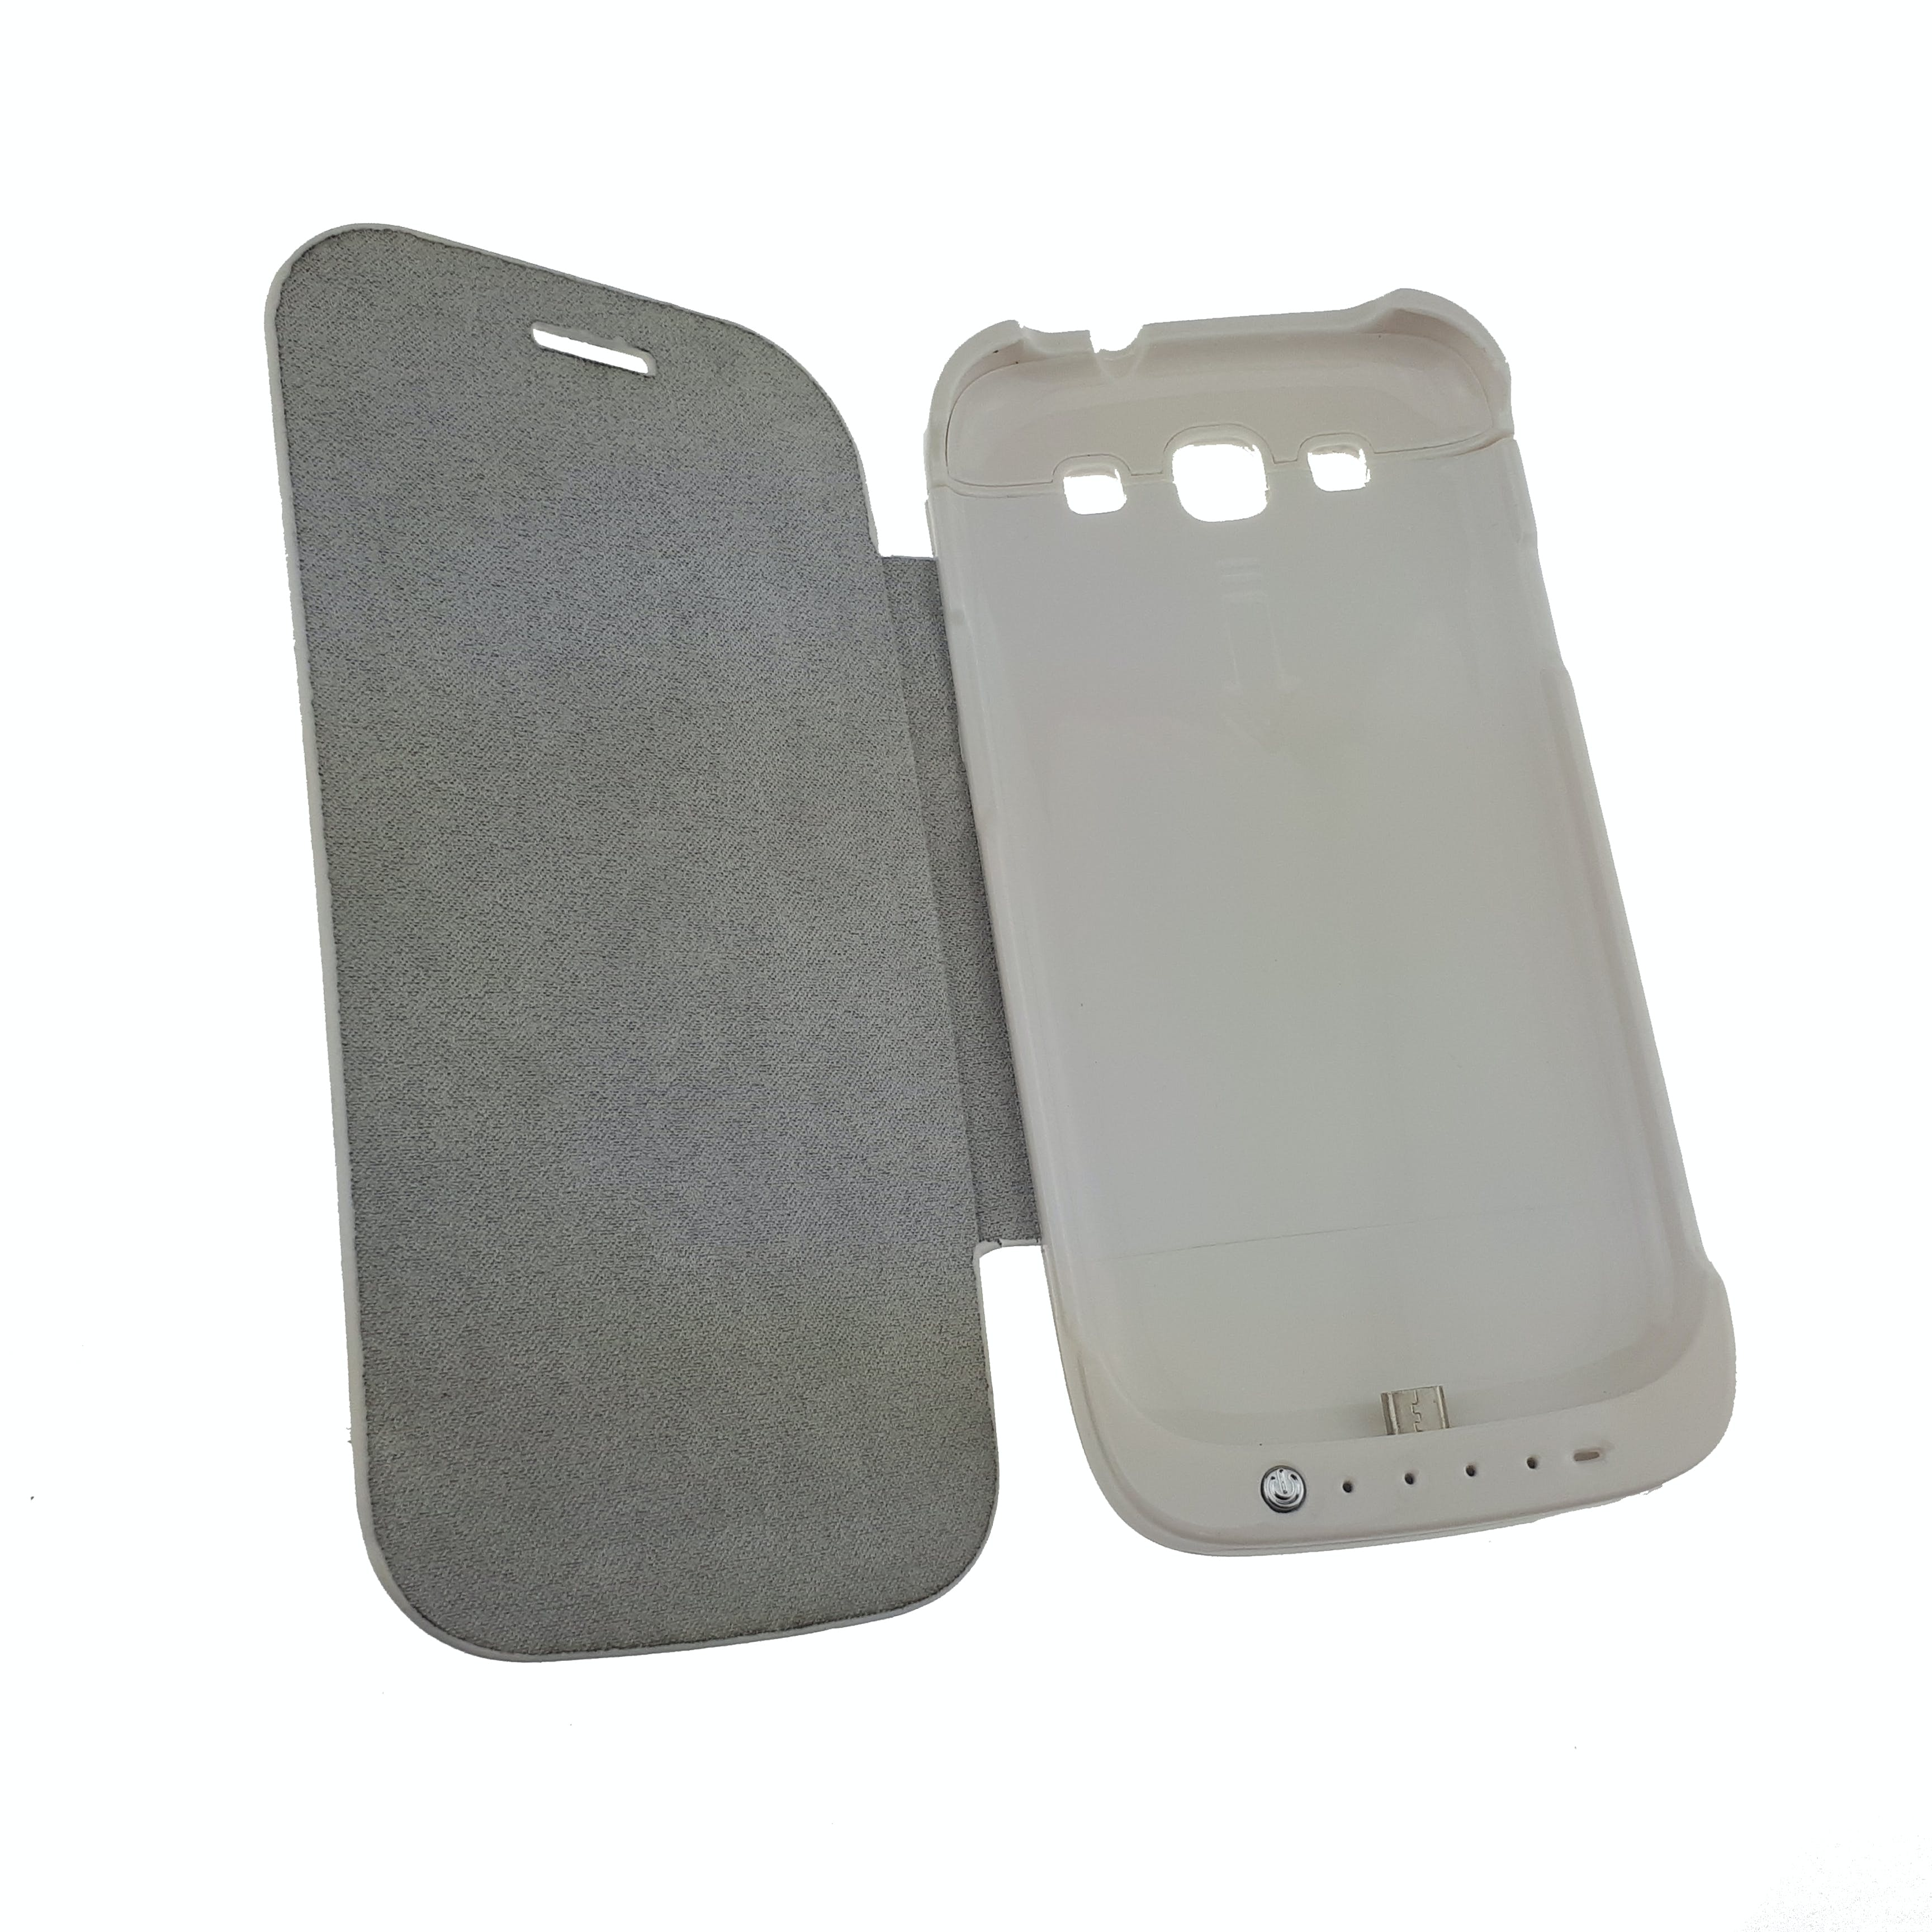 designer fashion 3a51d 59fa5 Extended Battery Case - Samsung Galaxy S3